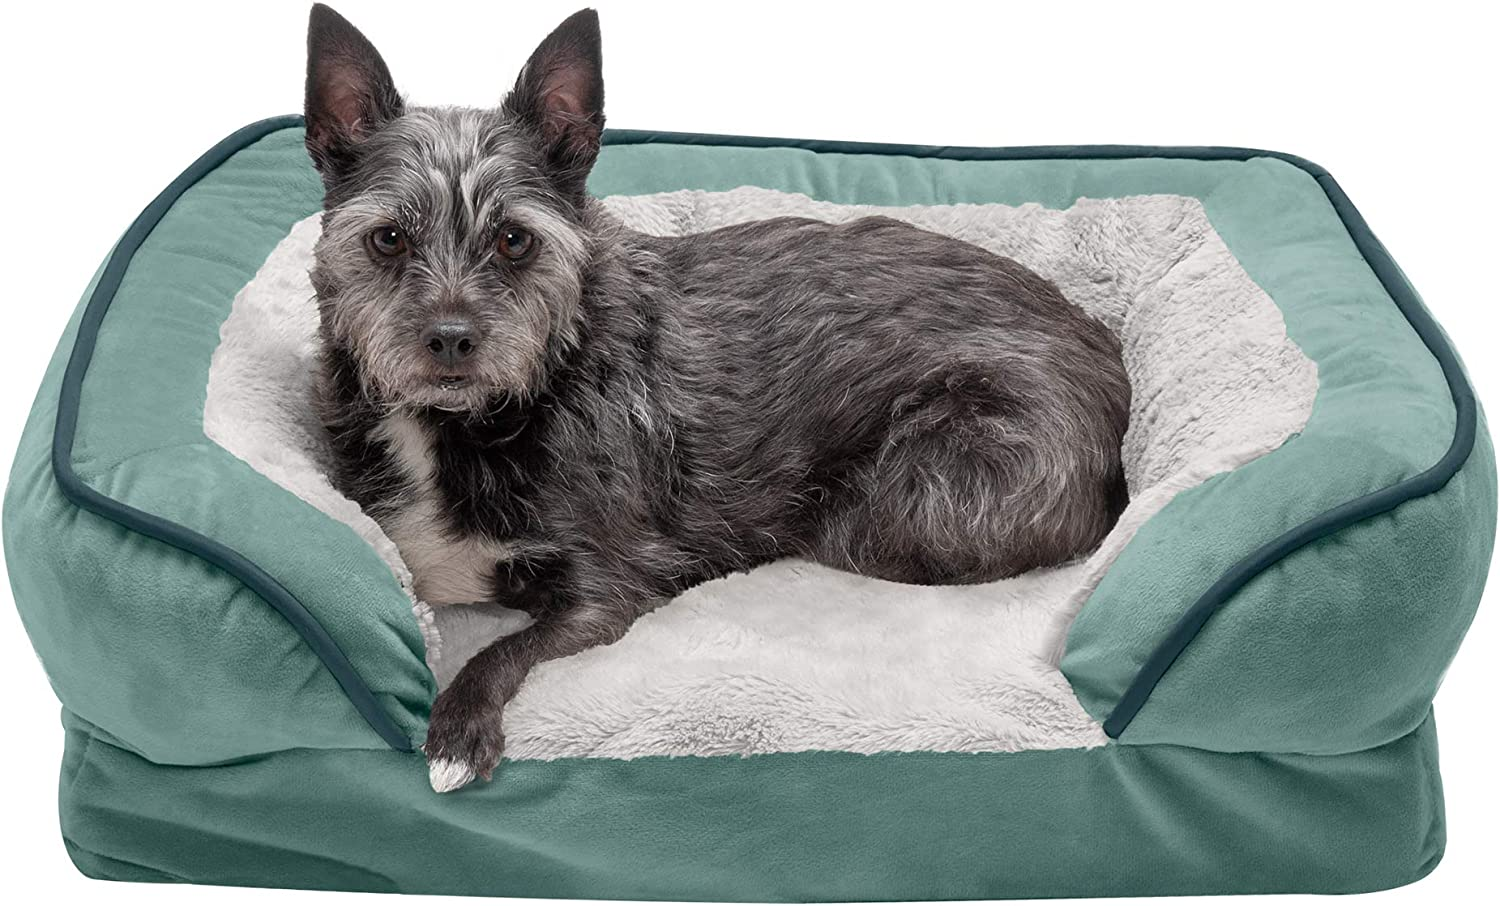 Brownstone Orthopedic Plush Velvet Waves Perfect Comfort Traditional Sofa-Style Living Room Couch Pet Bed with Removable Cover for Dogs and Cats Furhaven Pet Dog Bed Small